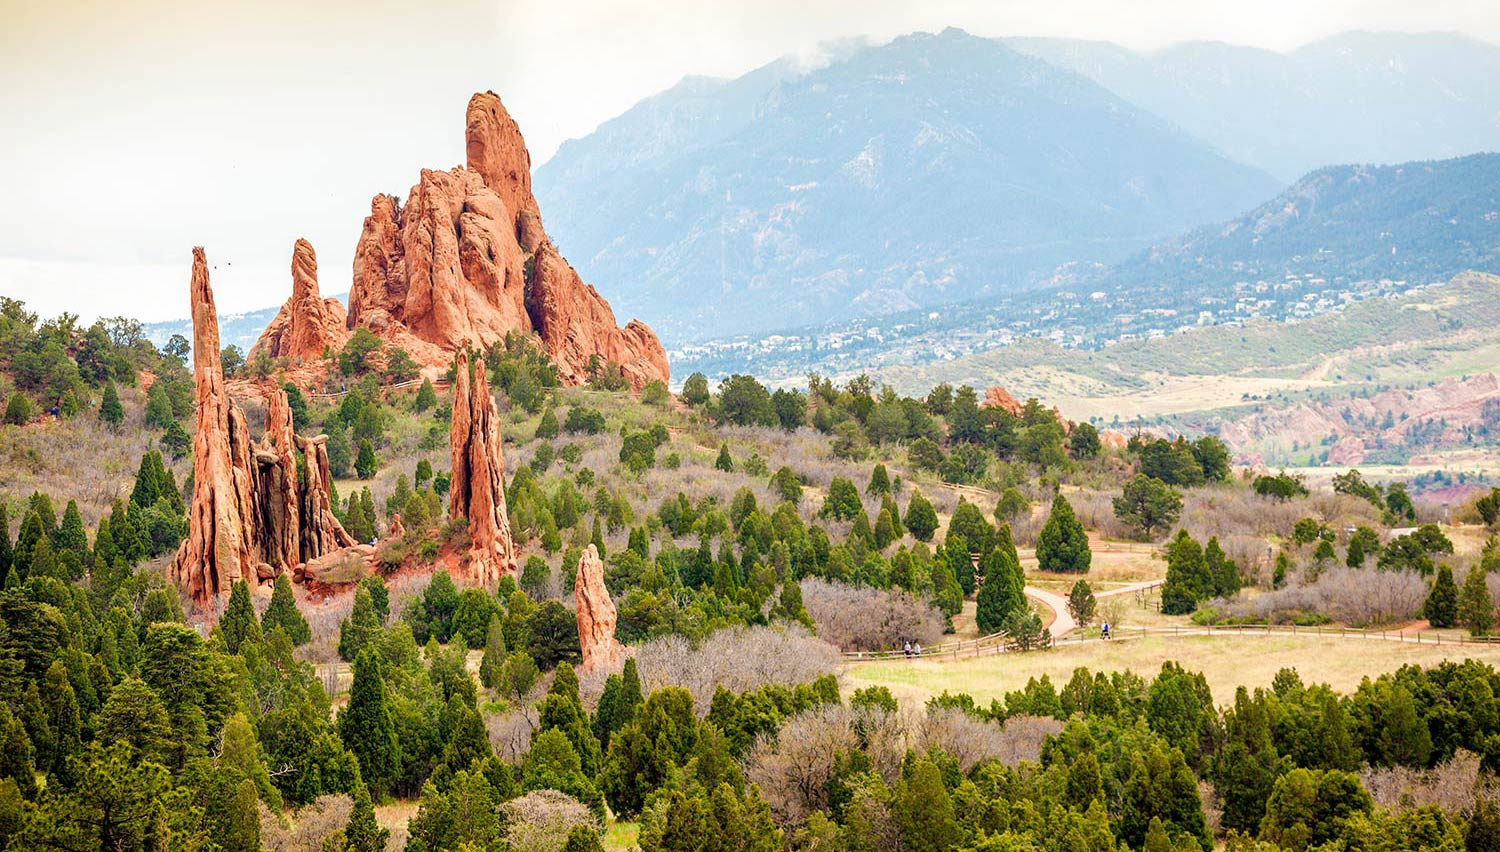 Pointed rock formations on a hill with sparse trees in Colorado Springs